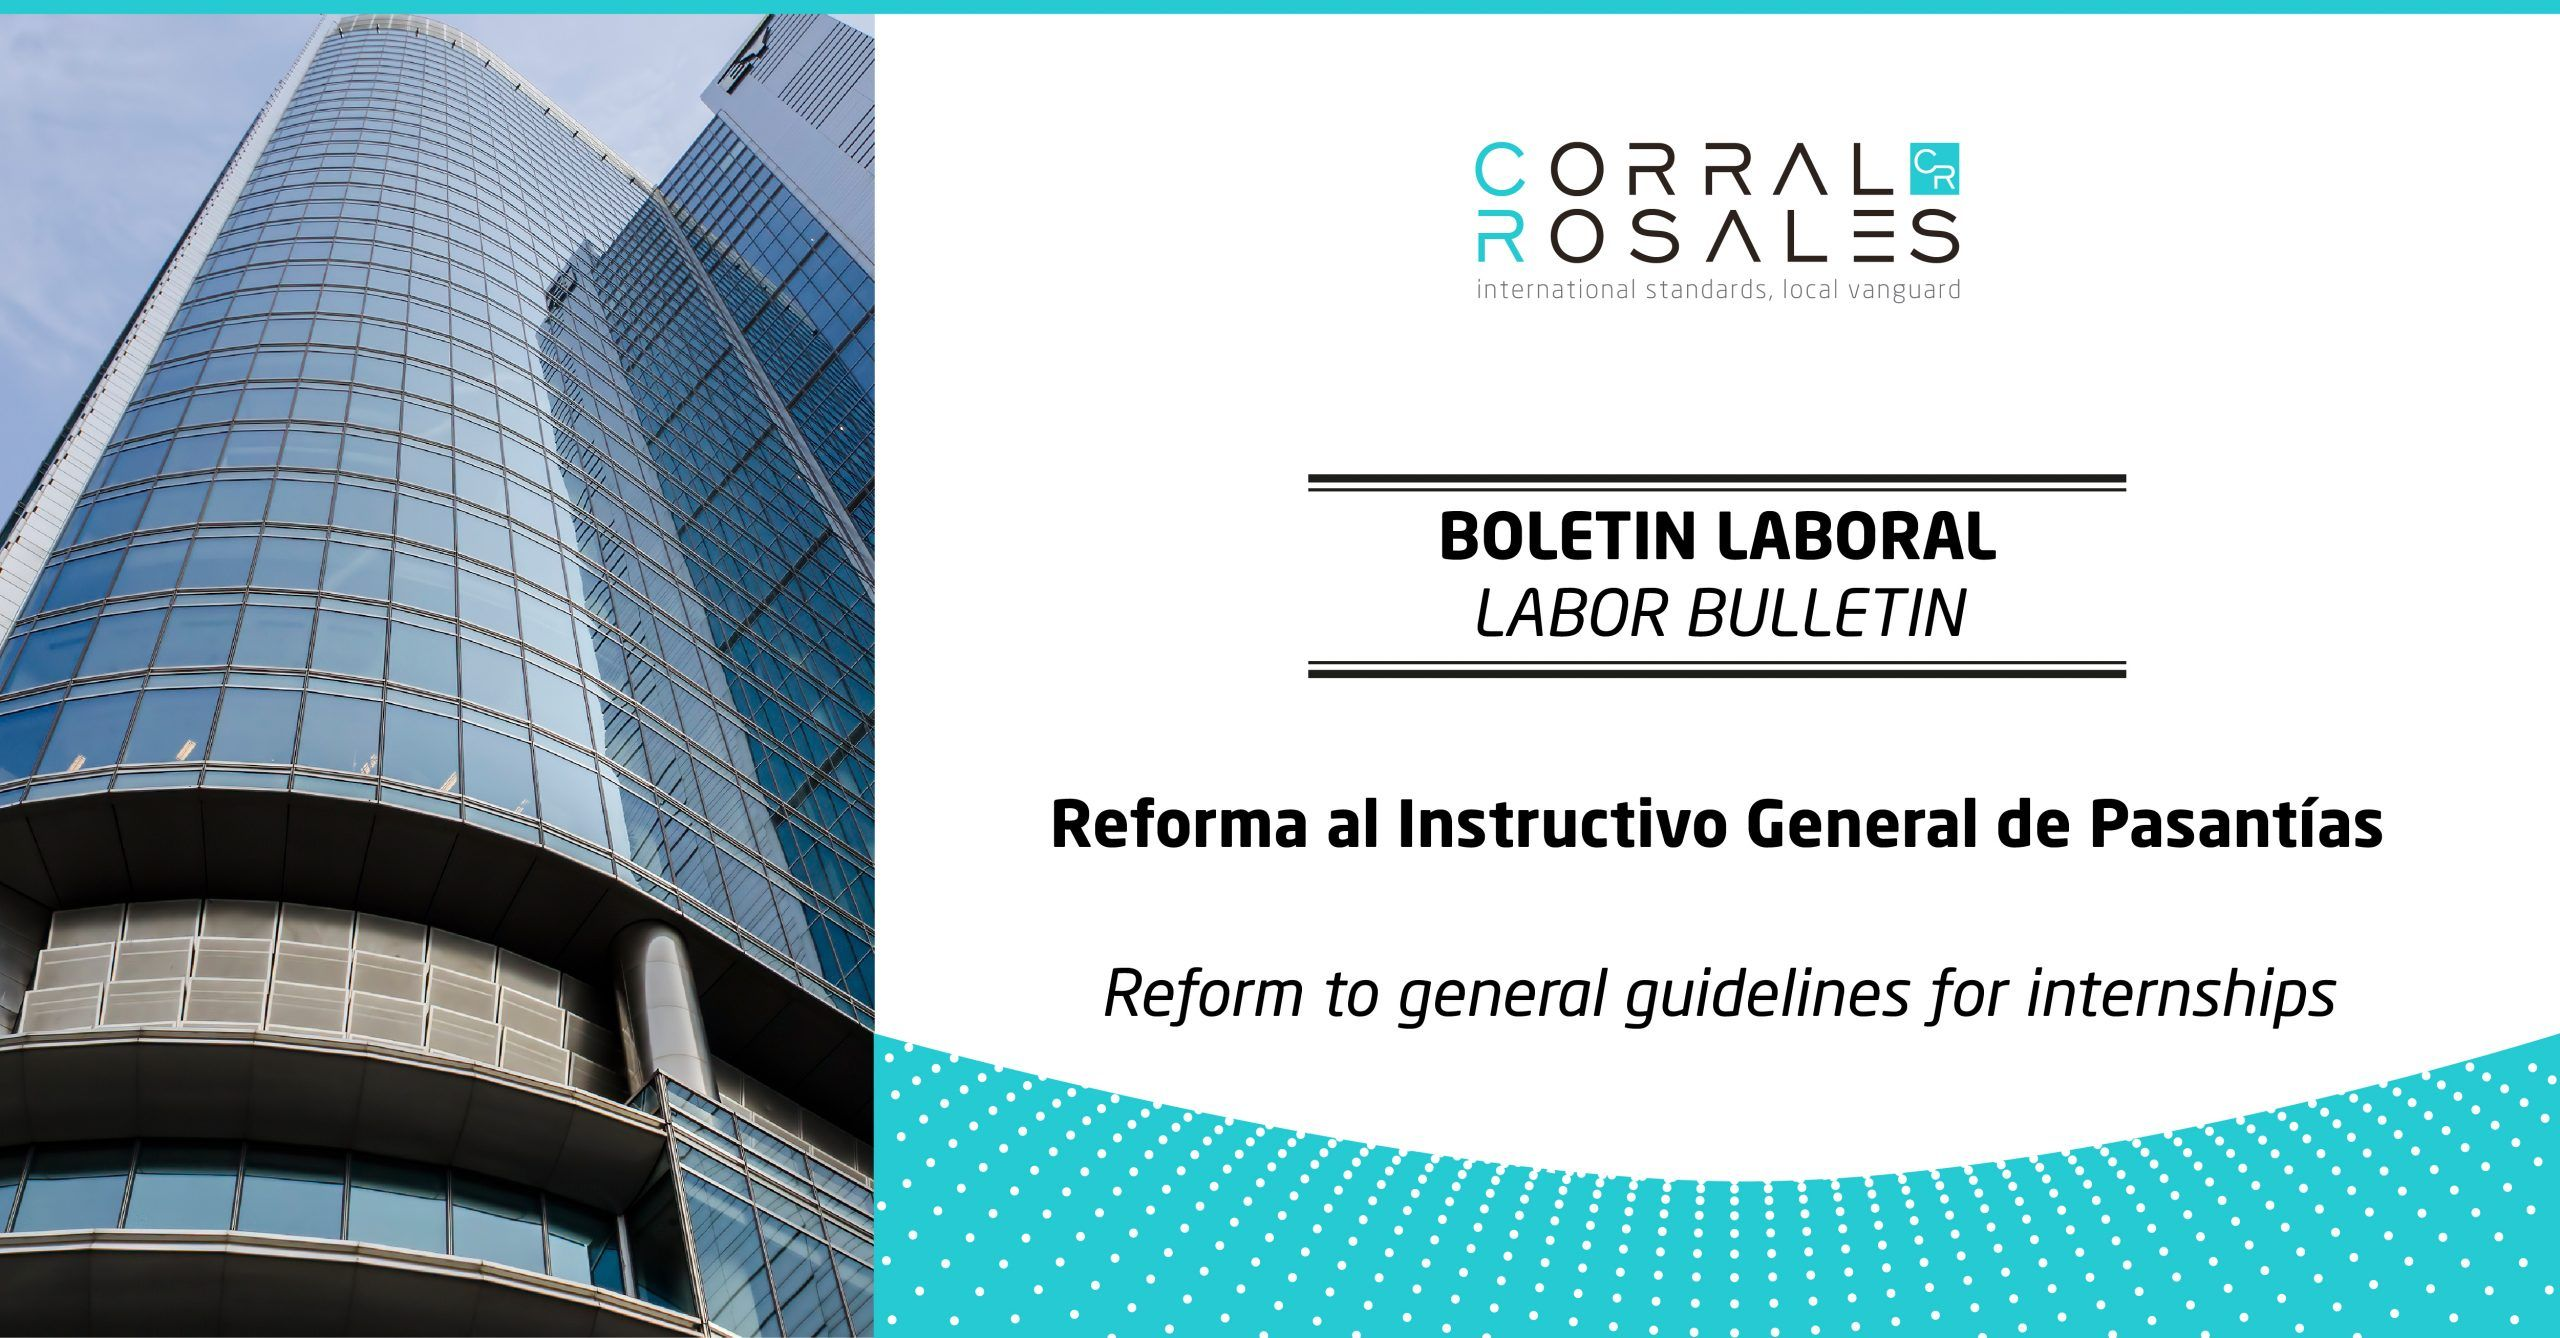 reform-to-general-guidelines-for-interships-lawyers-ecuador-corralrosales